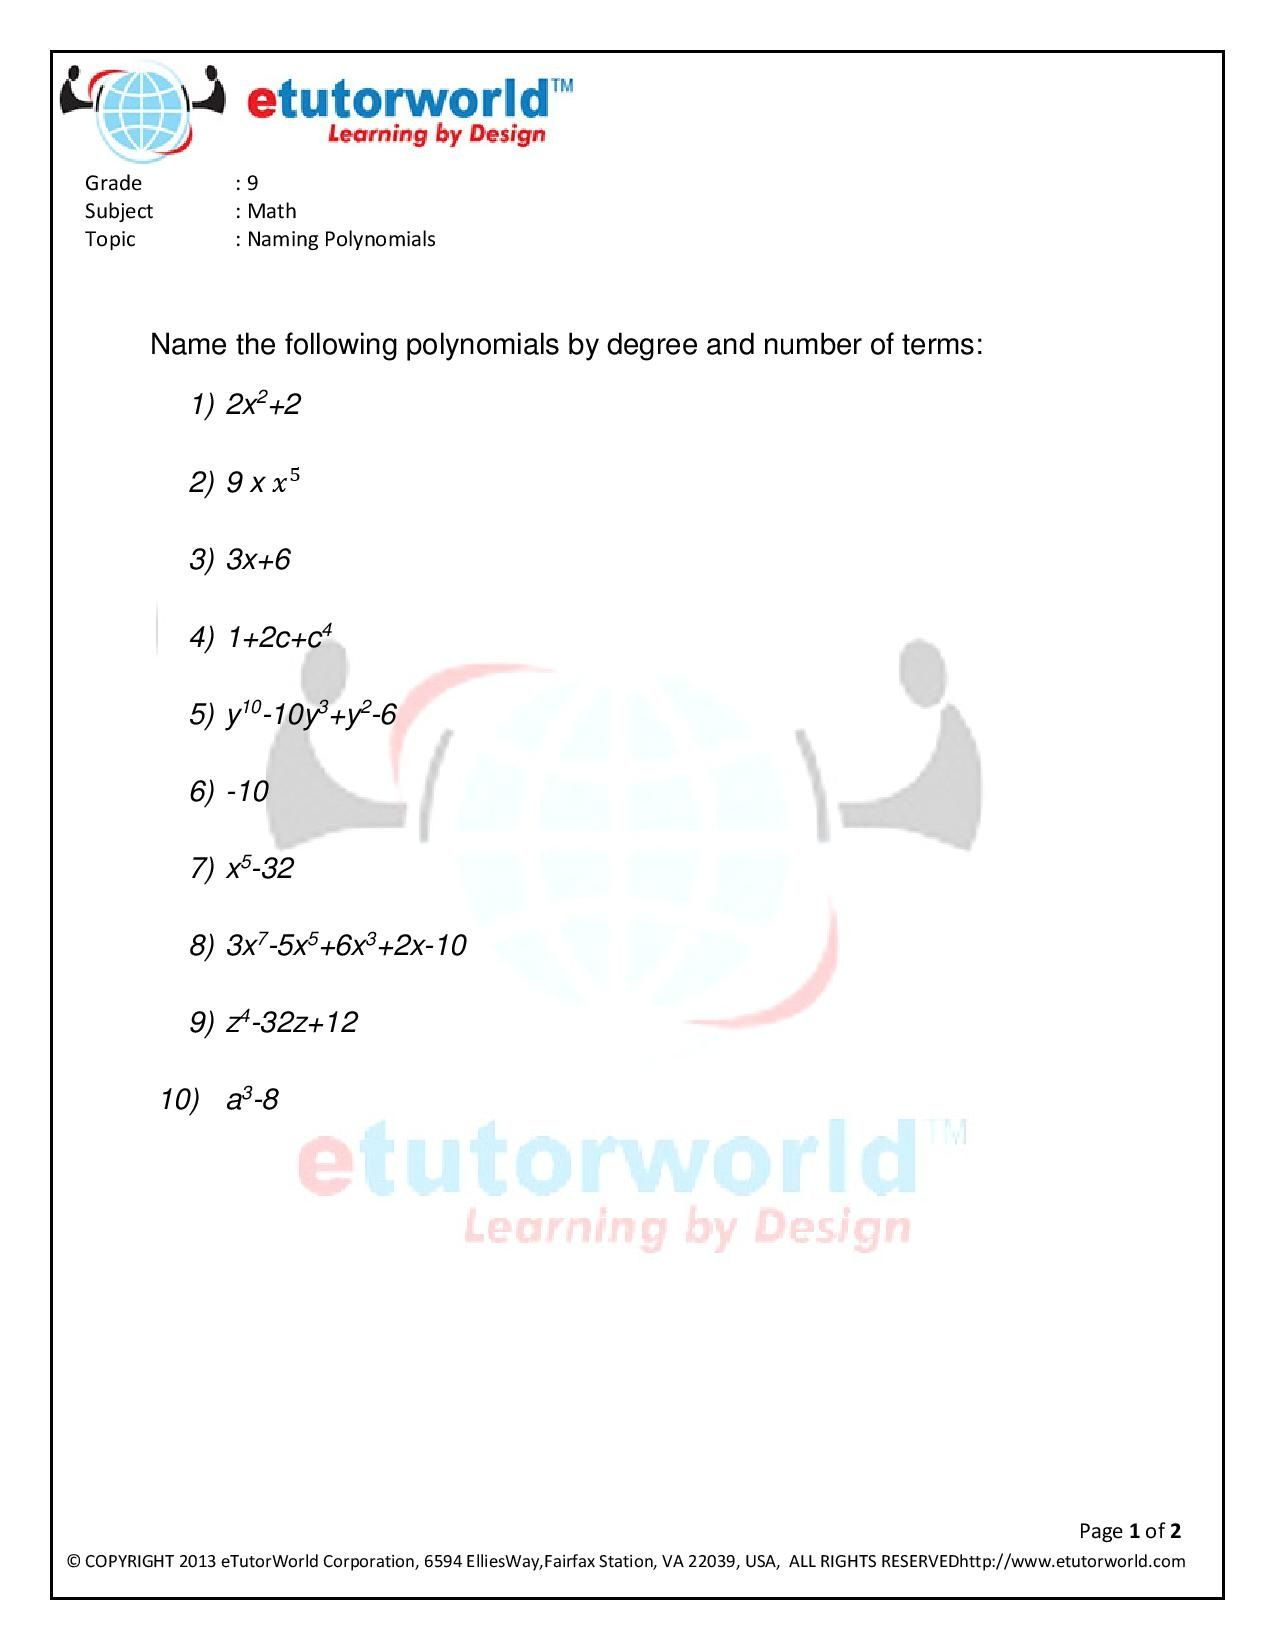 Math Practice Sheet for the topic 'Naming Polynomials' of